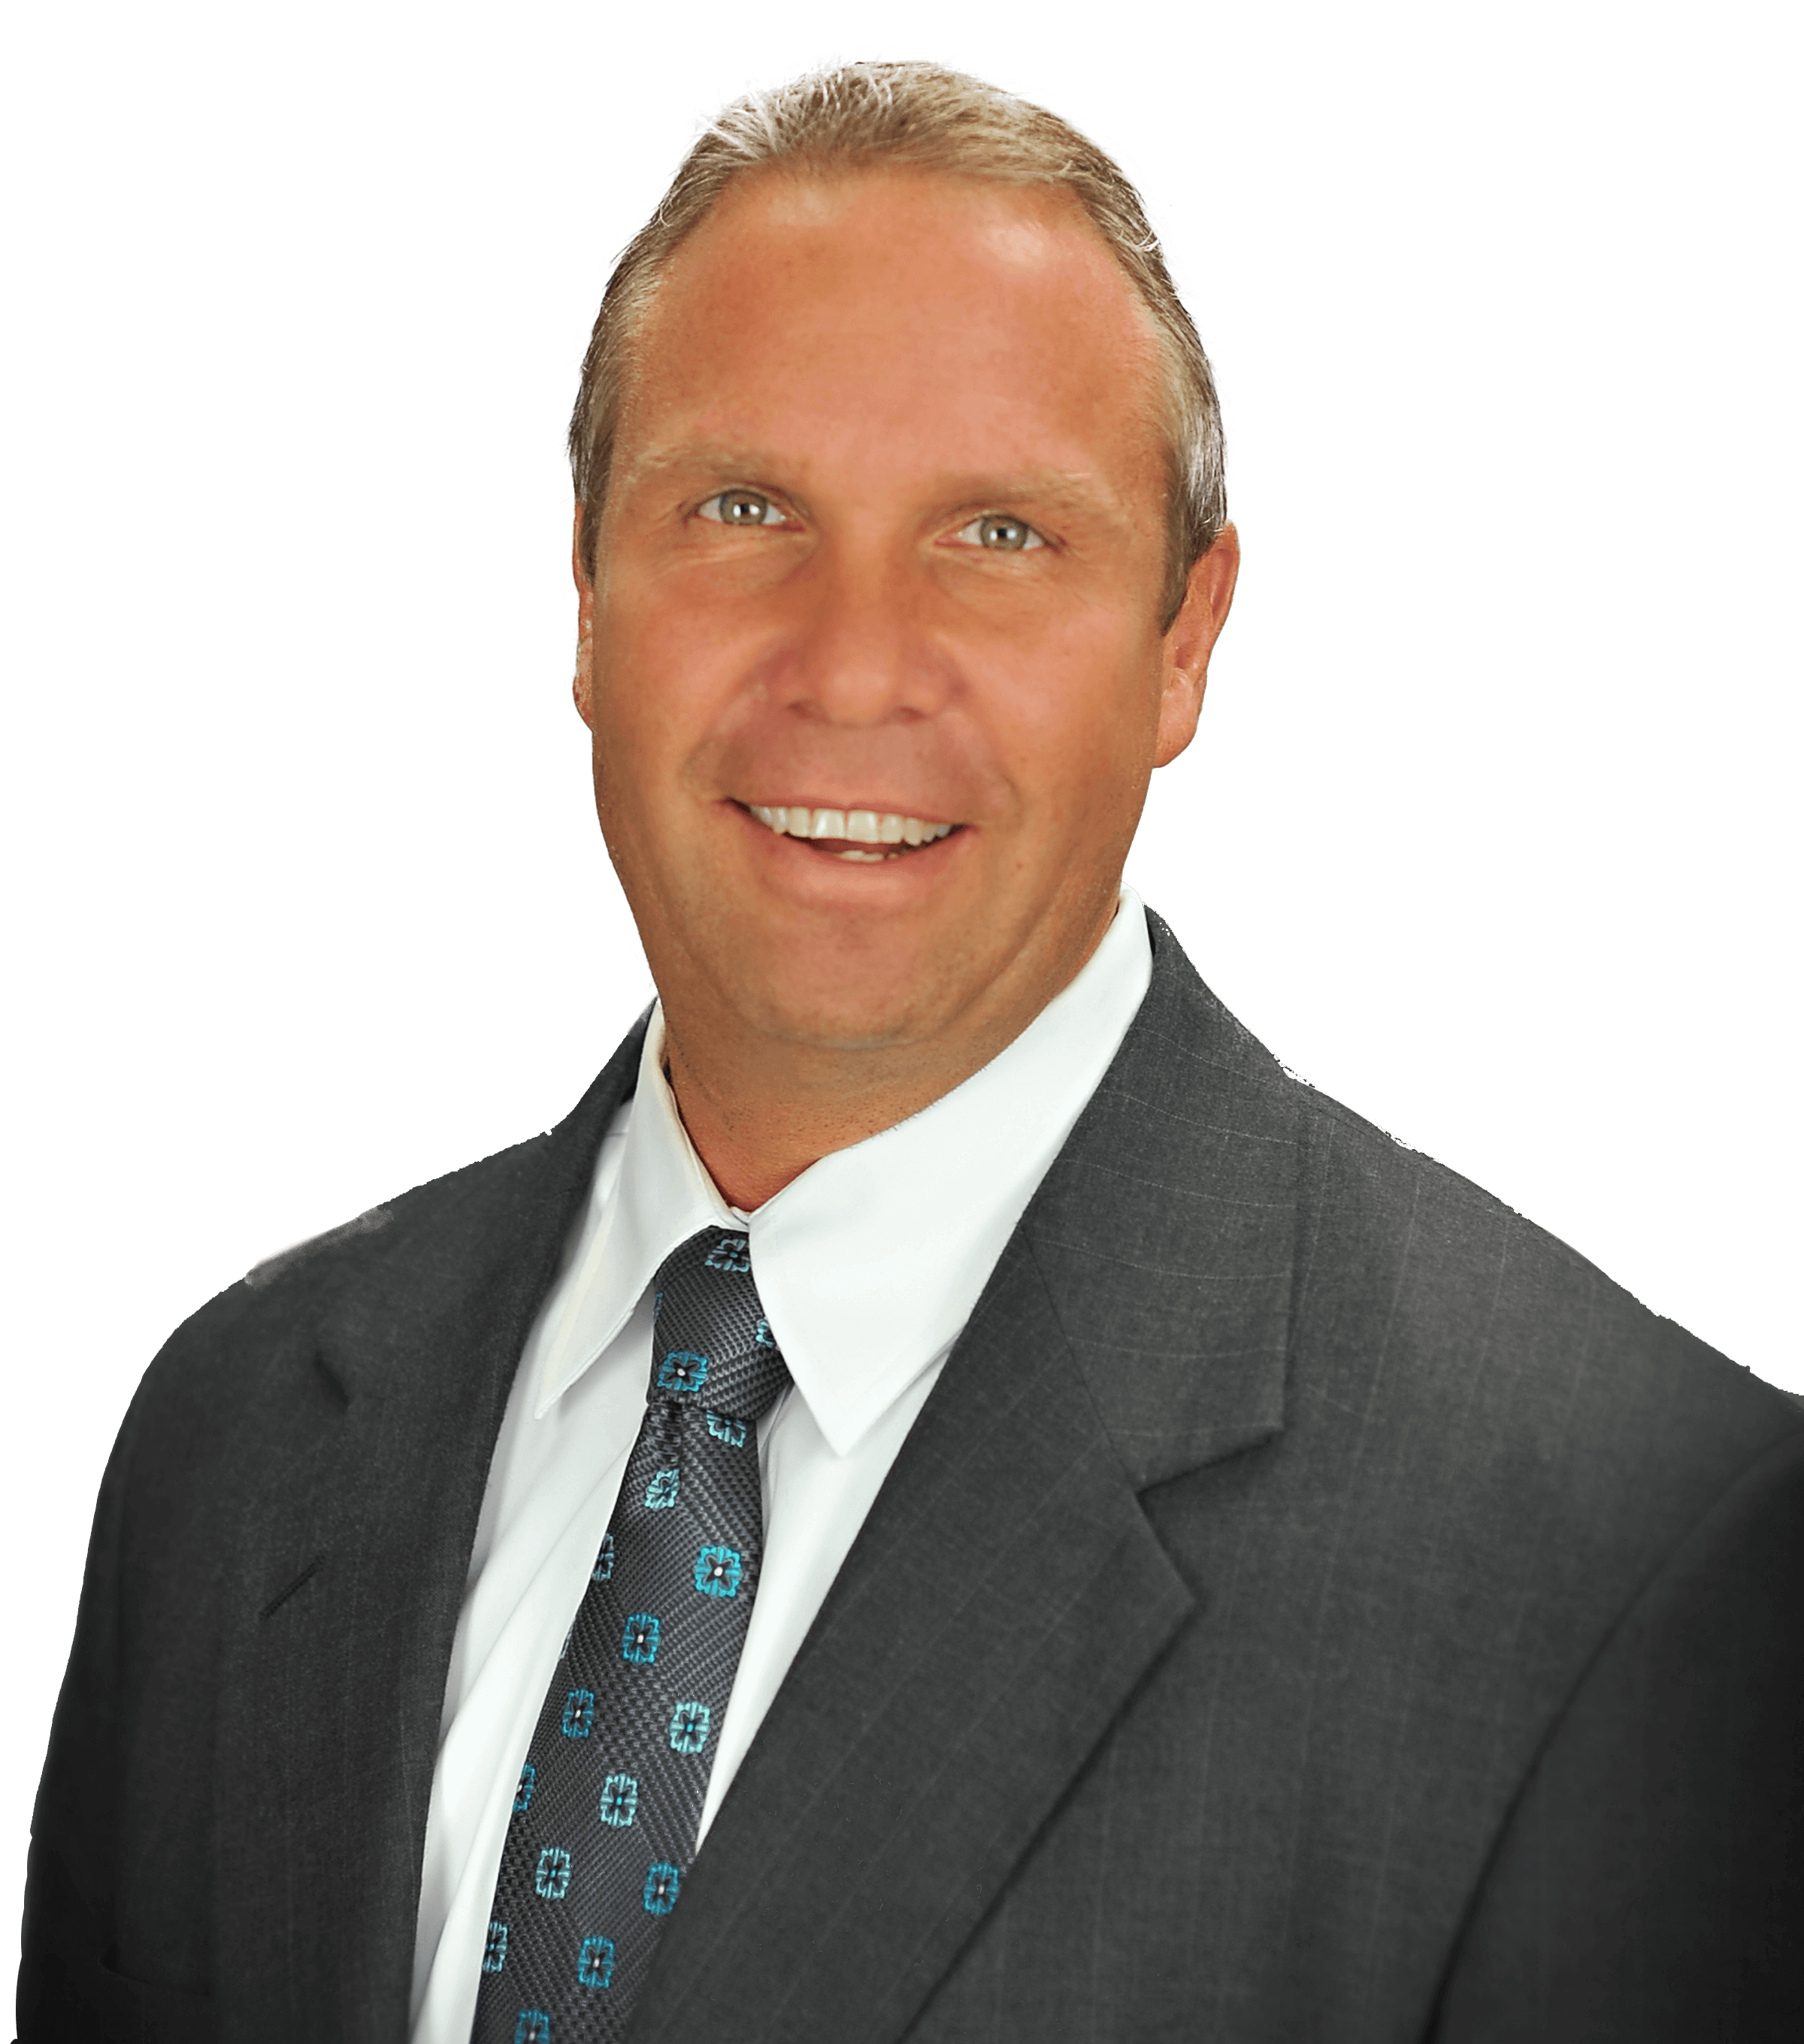 Pipes Insurance Service Team: Rick Pipes, Agency Owner and Vice President, Employee Benefits Advisor